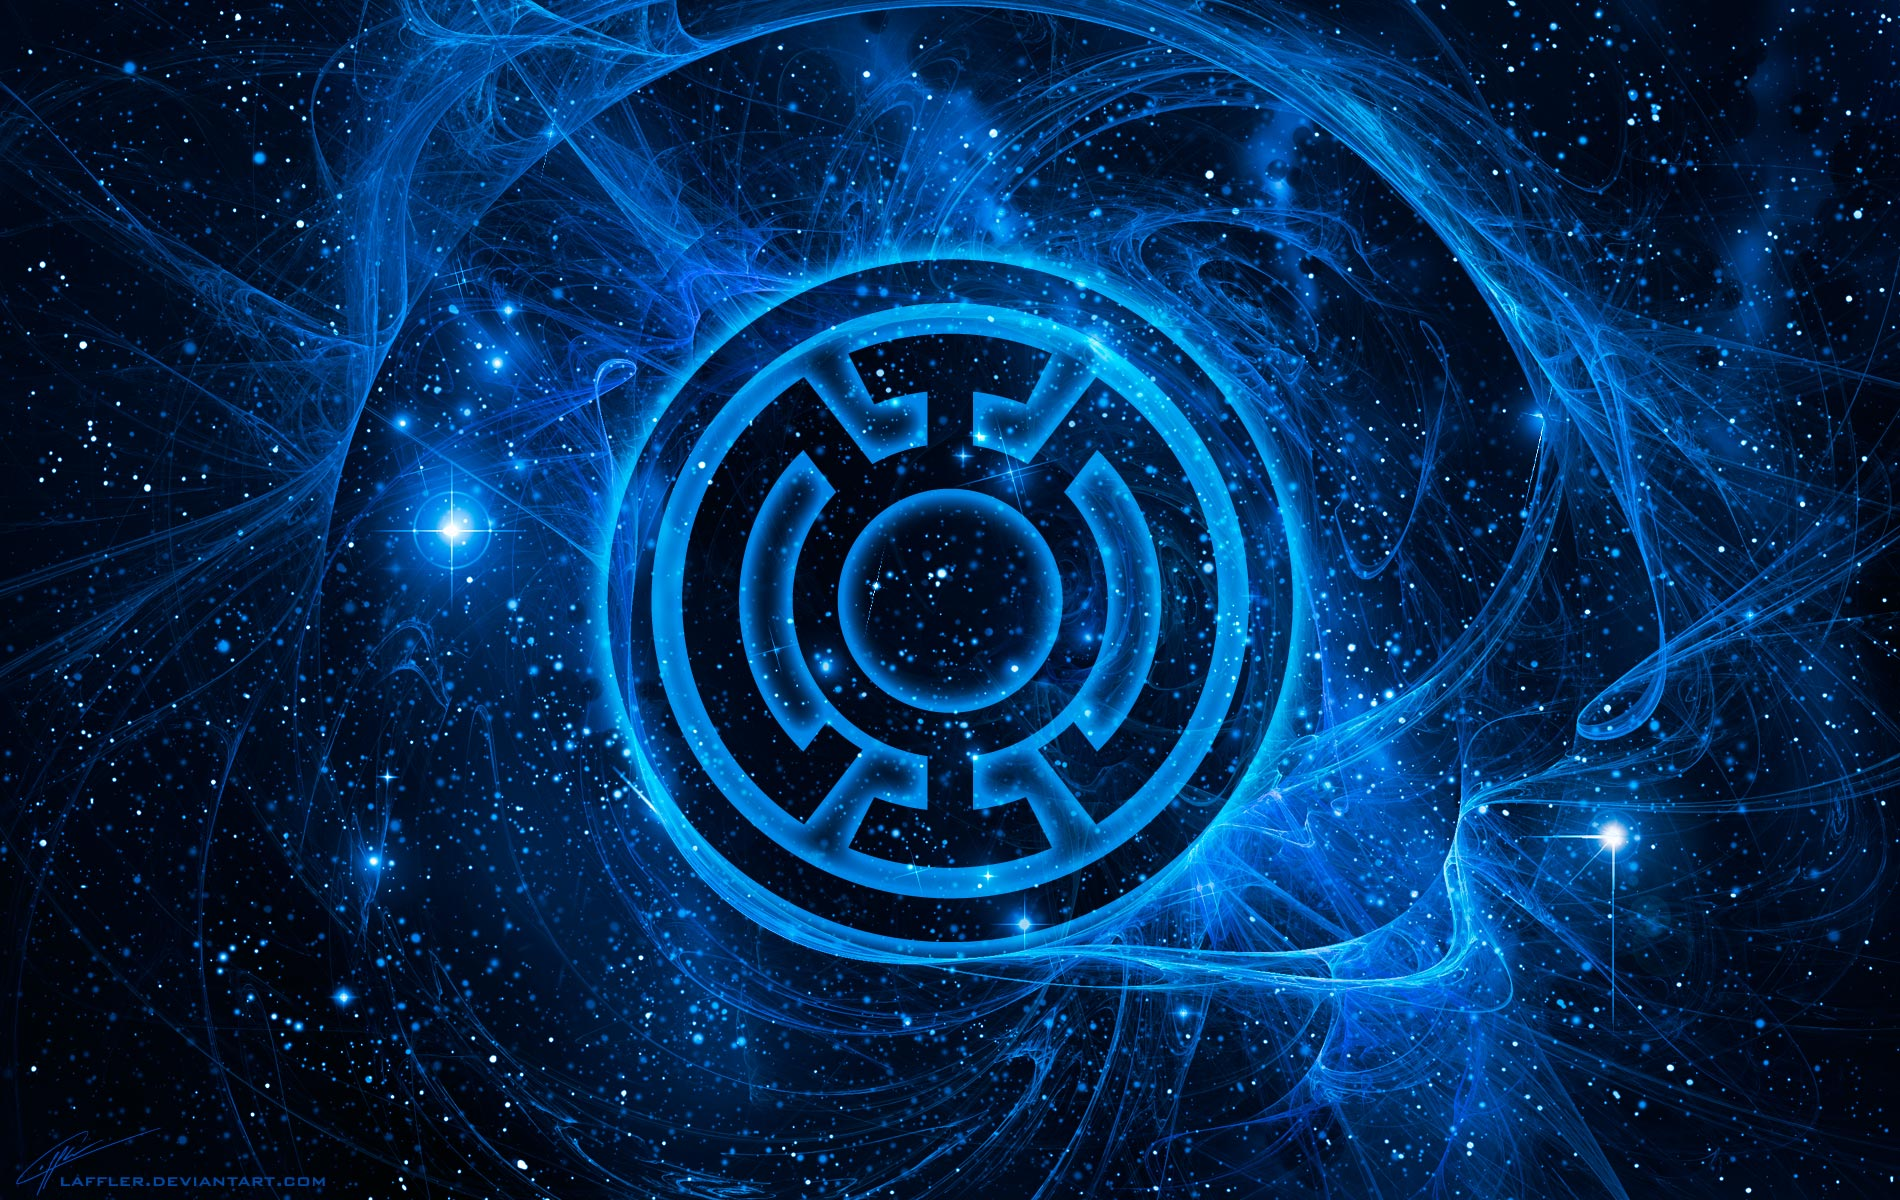 Blue Lantern Corps Wallpapers by Laffler 1900x1200